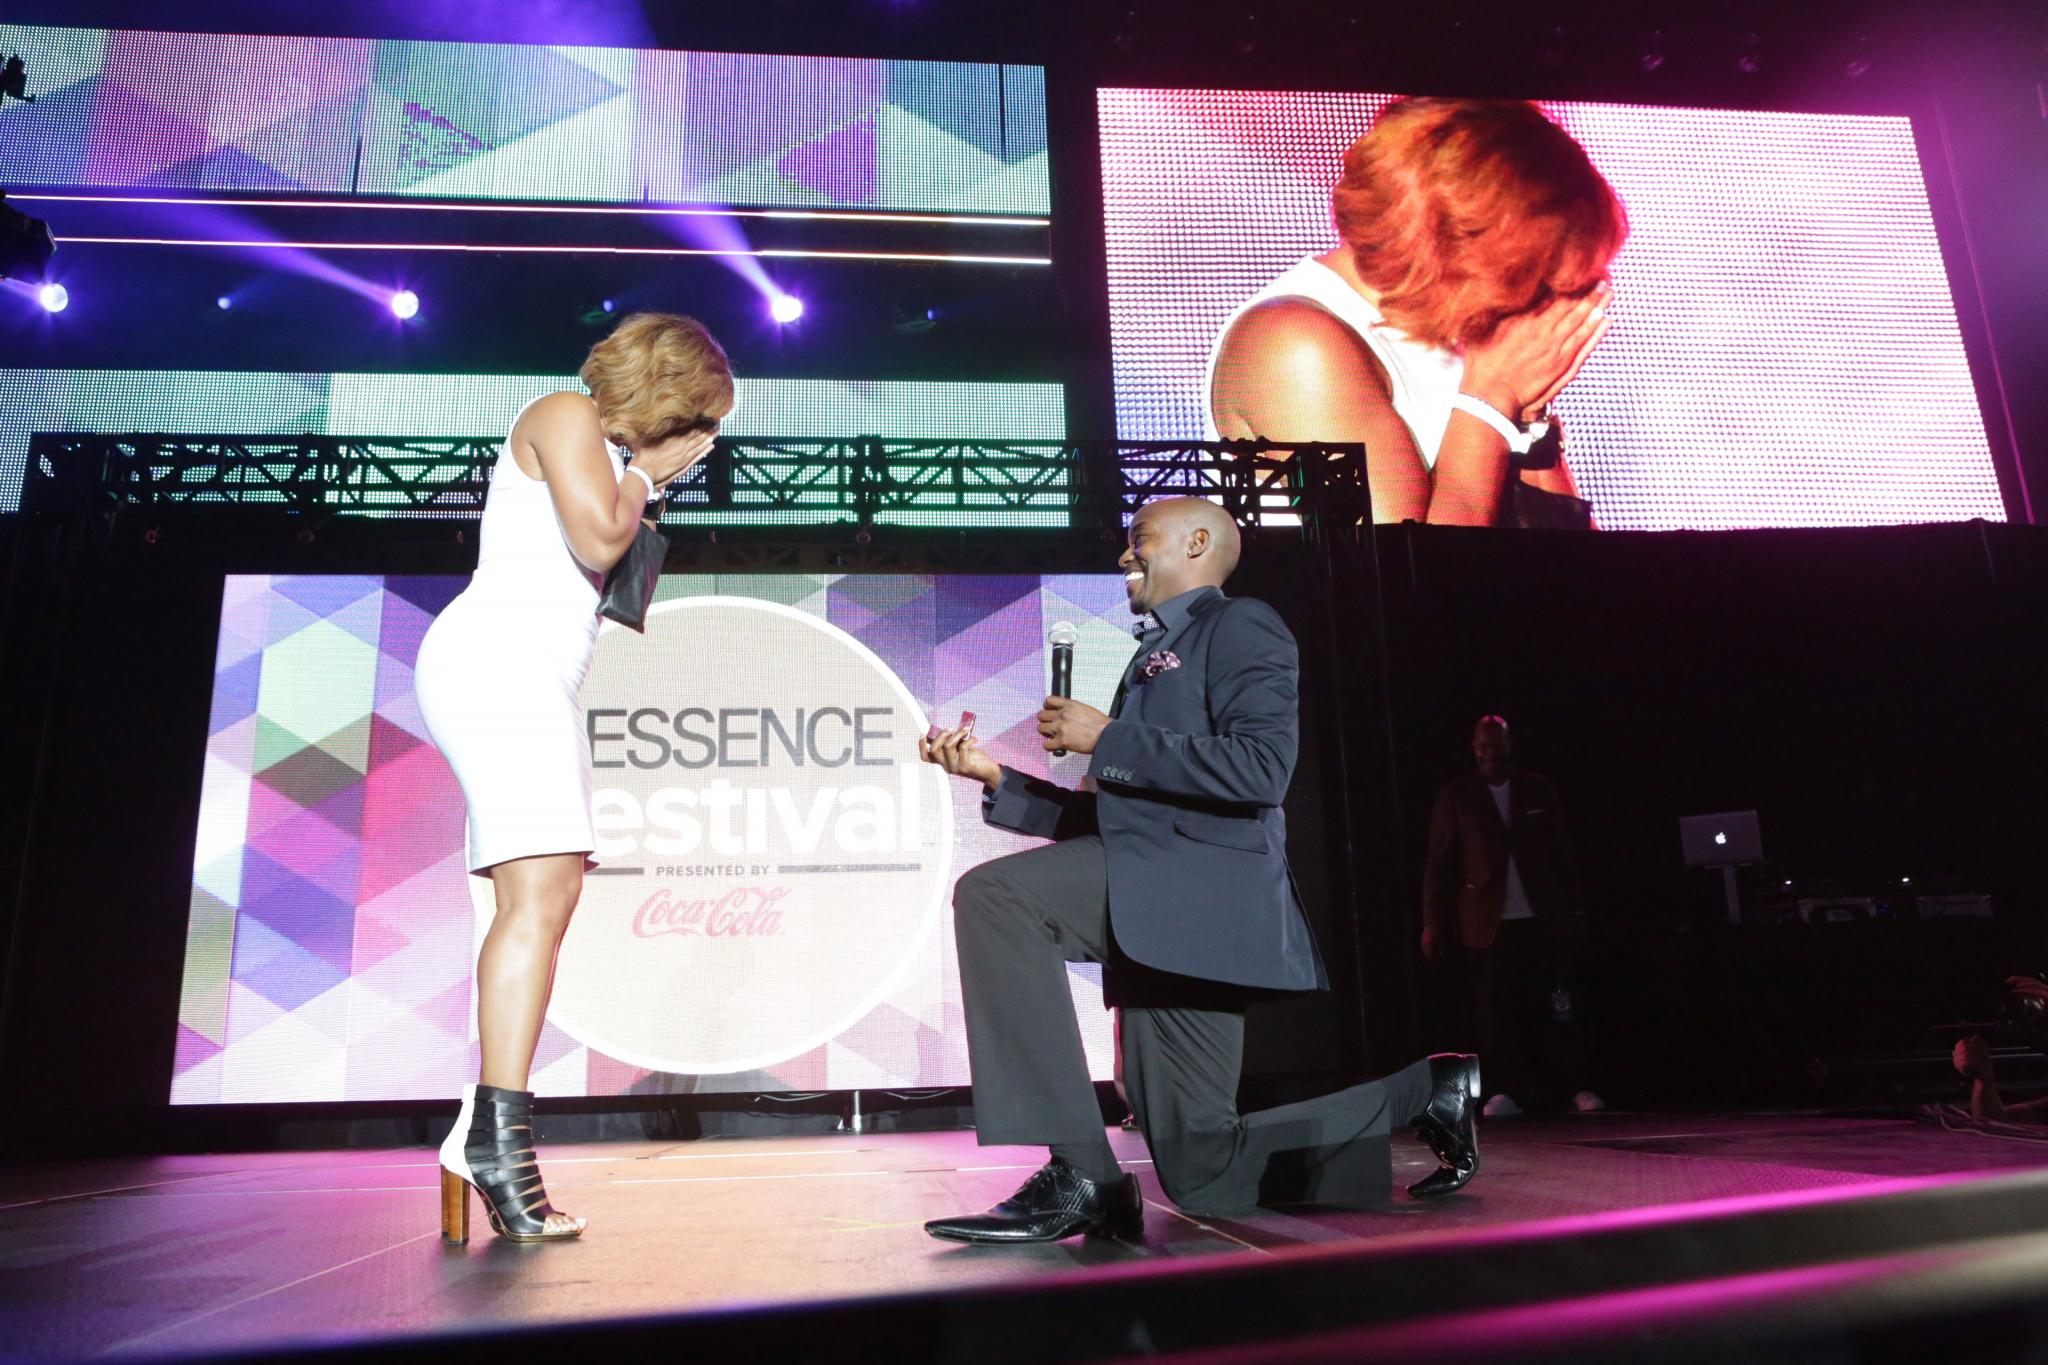 Will Packer Proposes Live at the 2013 ESSENCE Festival